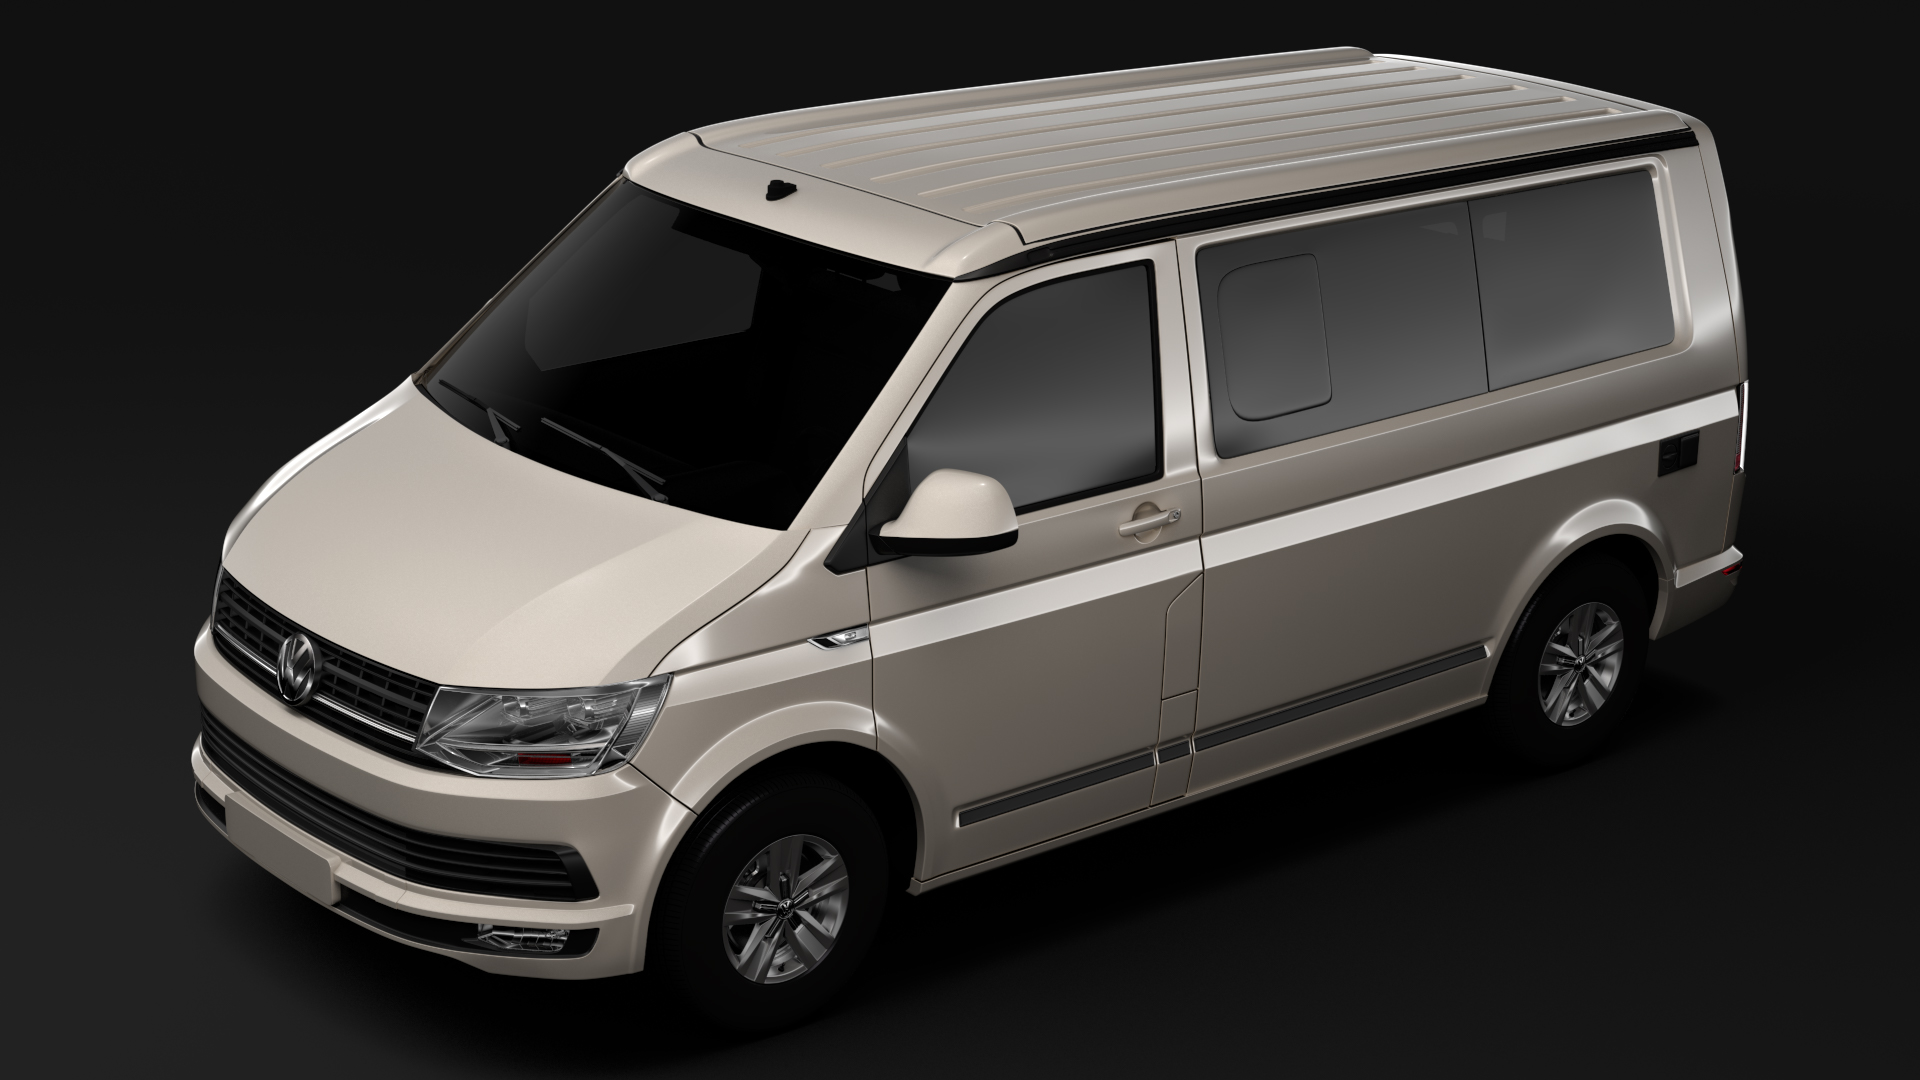 vw california t6 2018 3d model buy vw california t6 2018. Black Bedroom Furniture Sets. Home Design Ideas